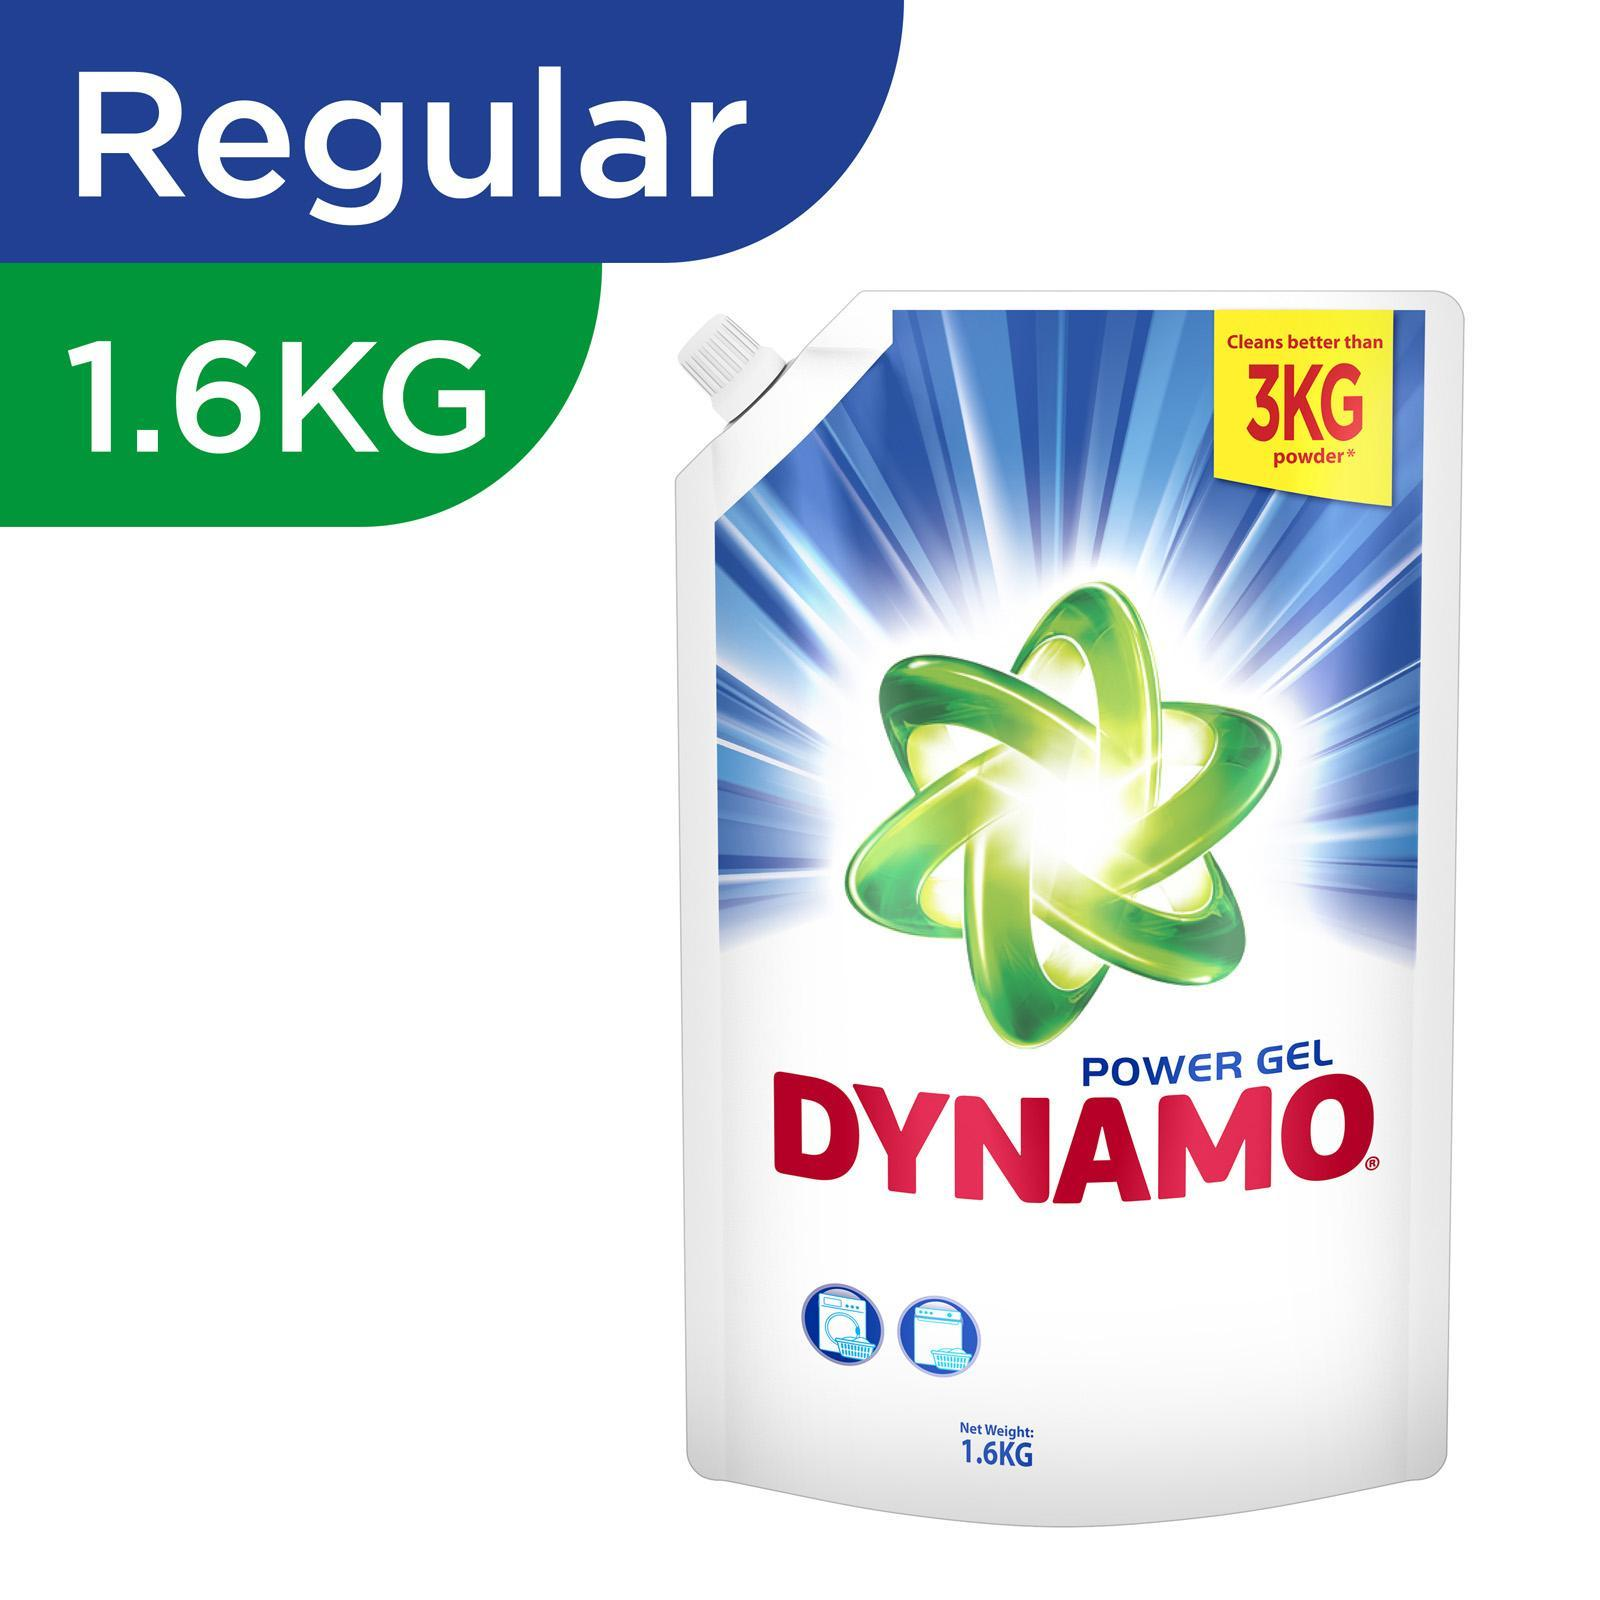 Dynamo Power Gel Regular Laundry Detergent Refill 1.6KG